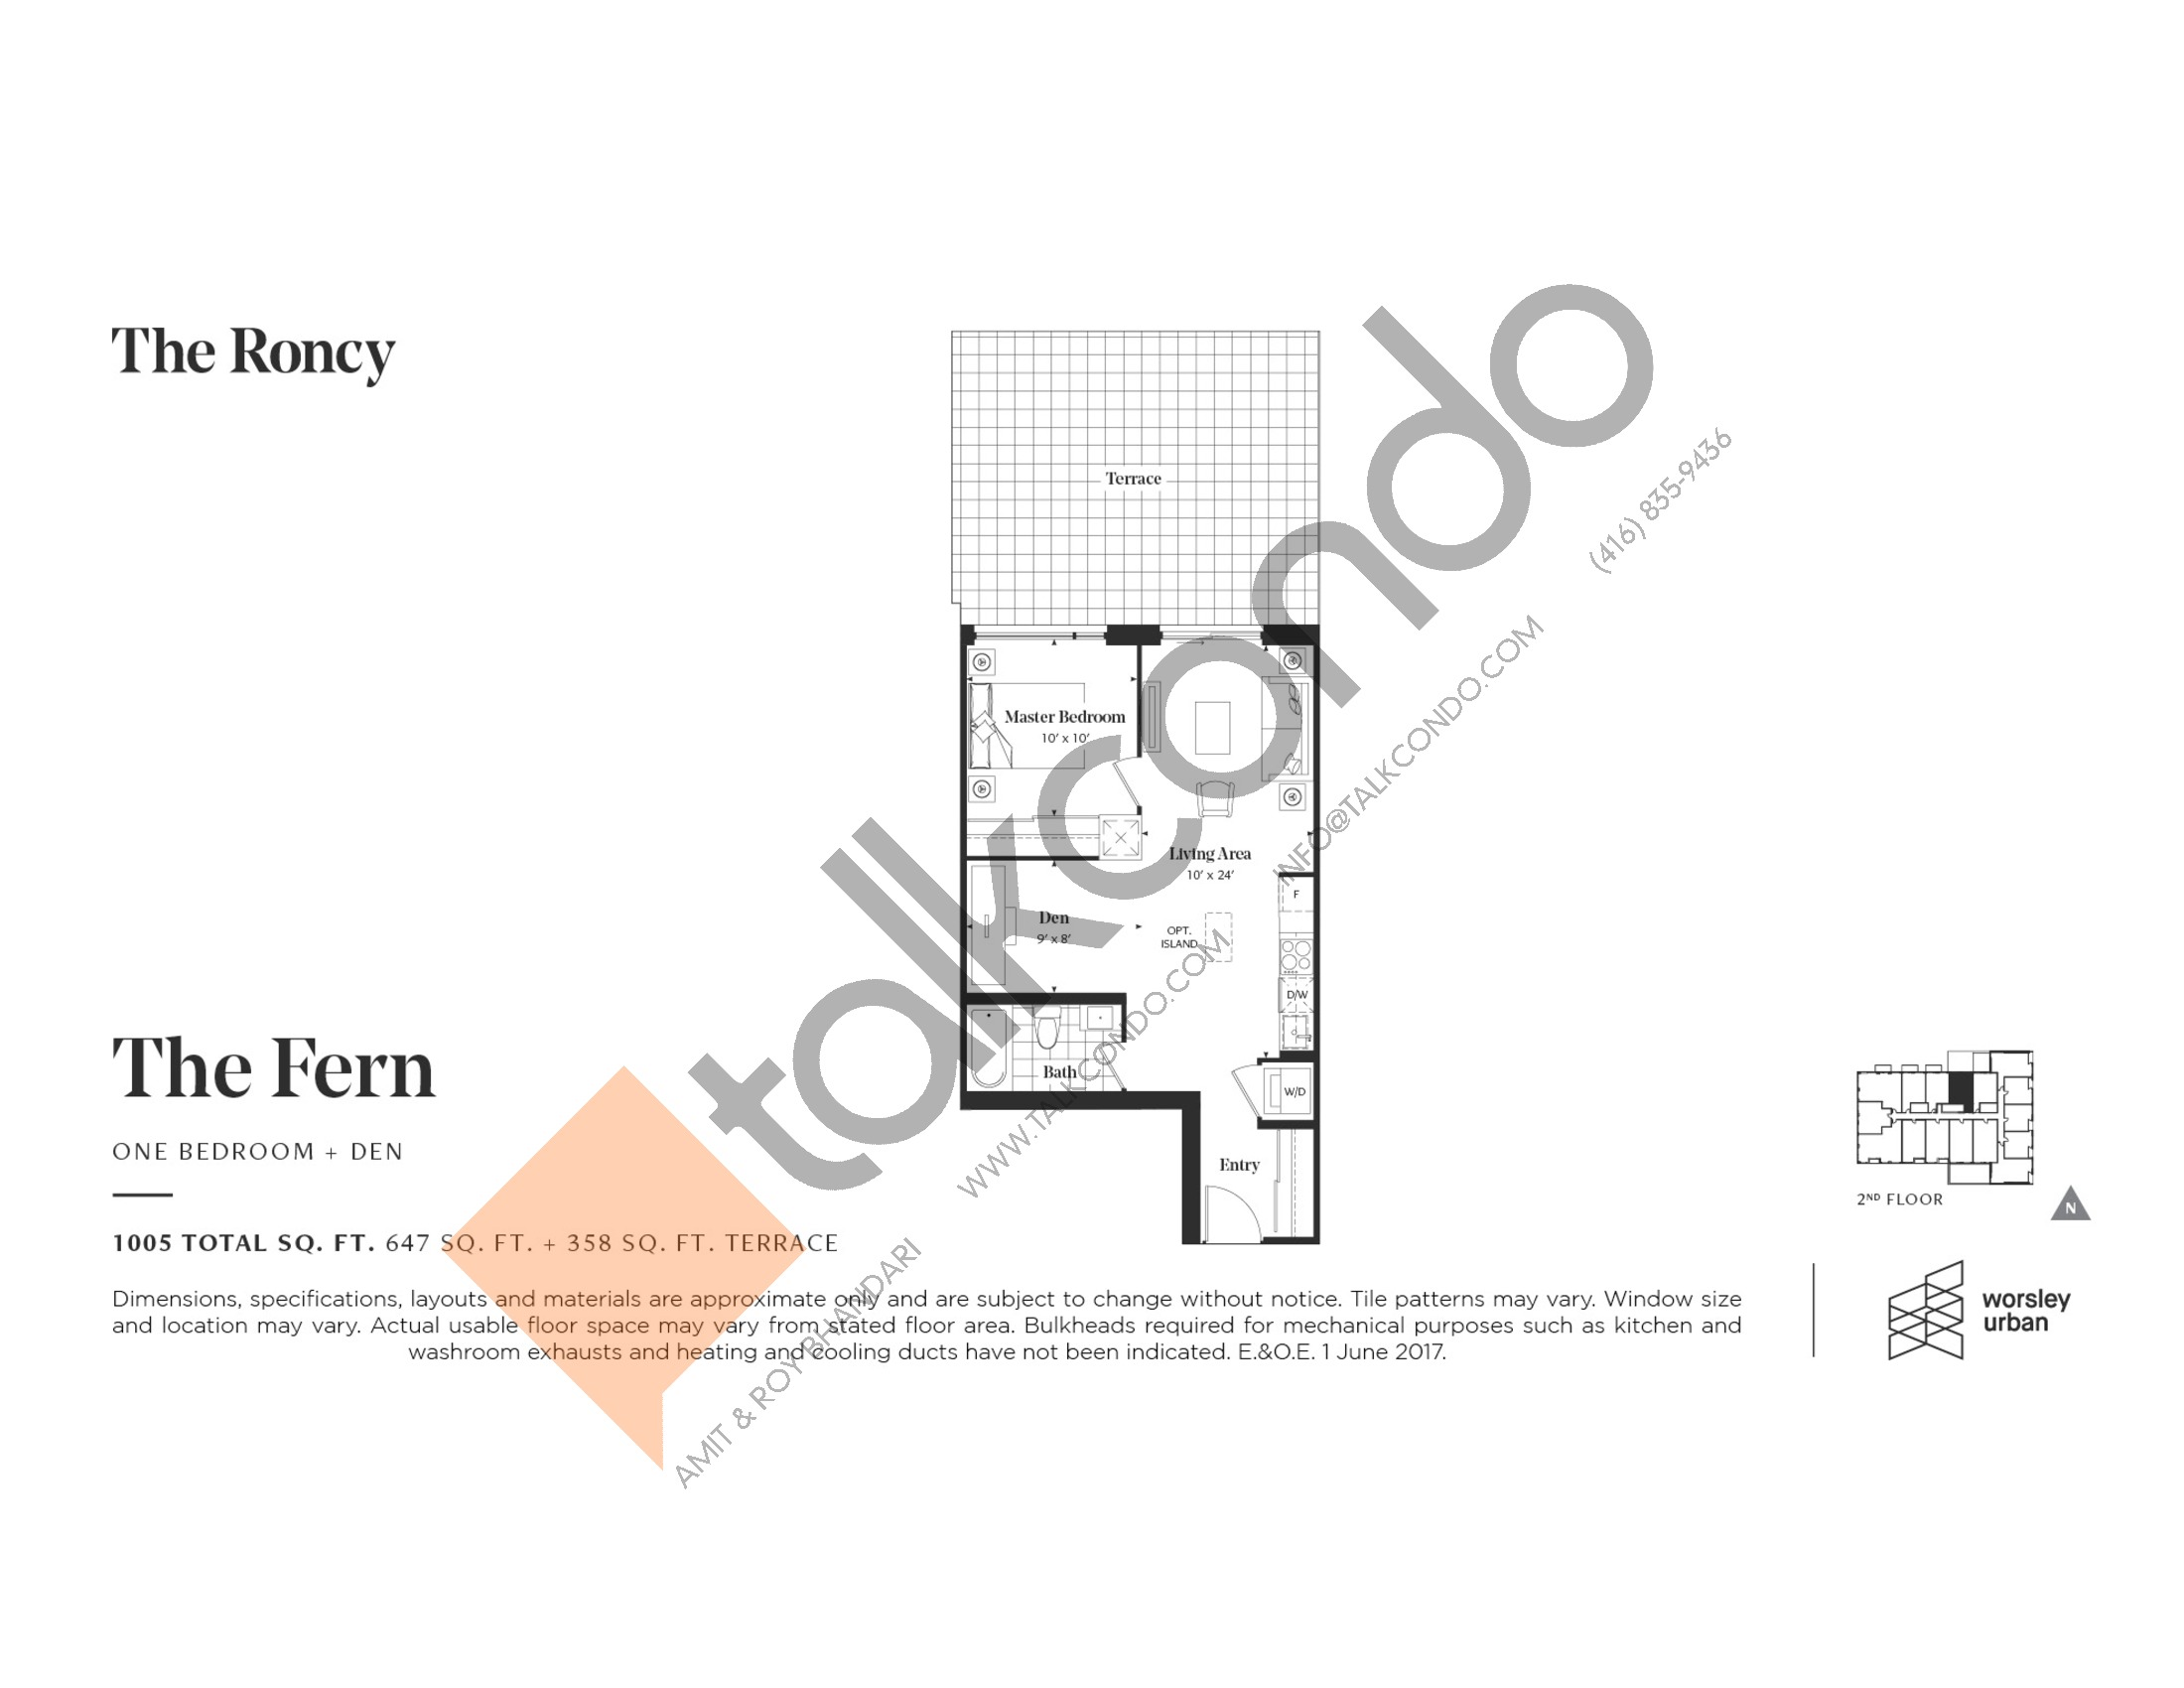 The Fern Floor Plan at The Roncy Condos - 647 sq.ft